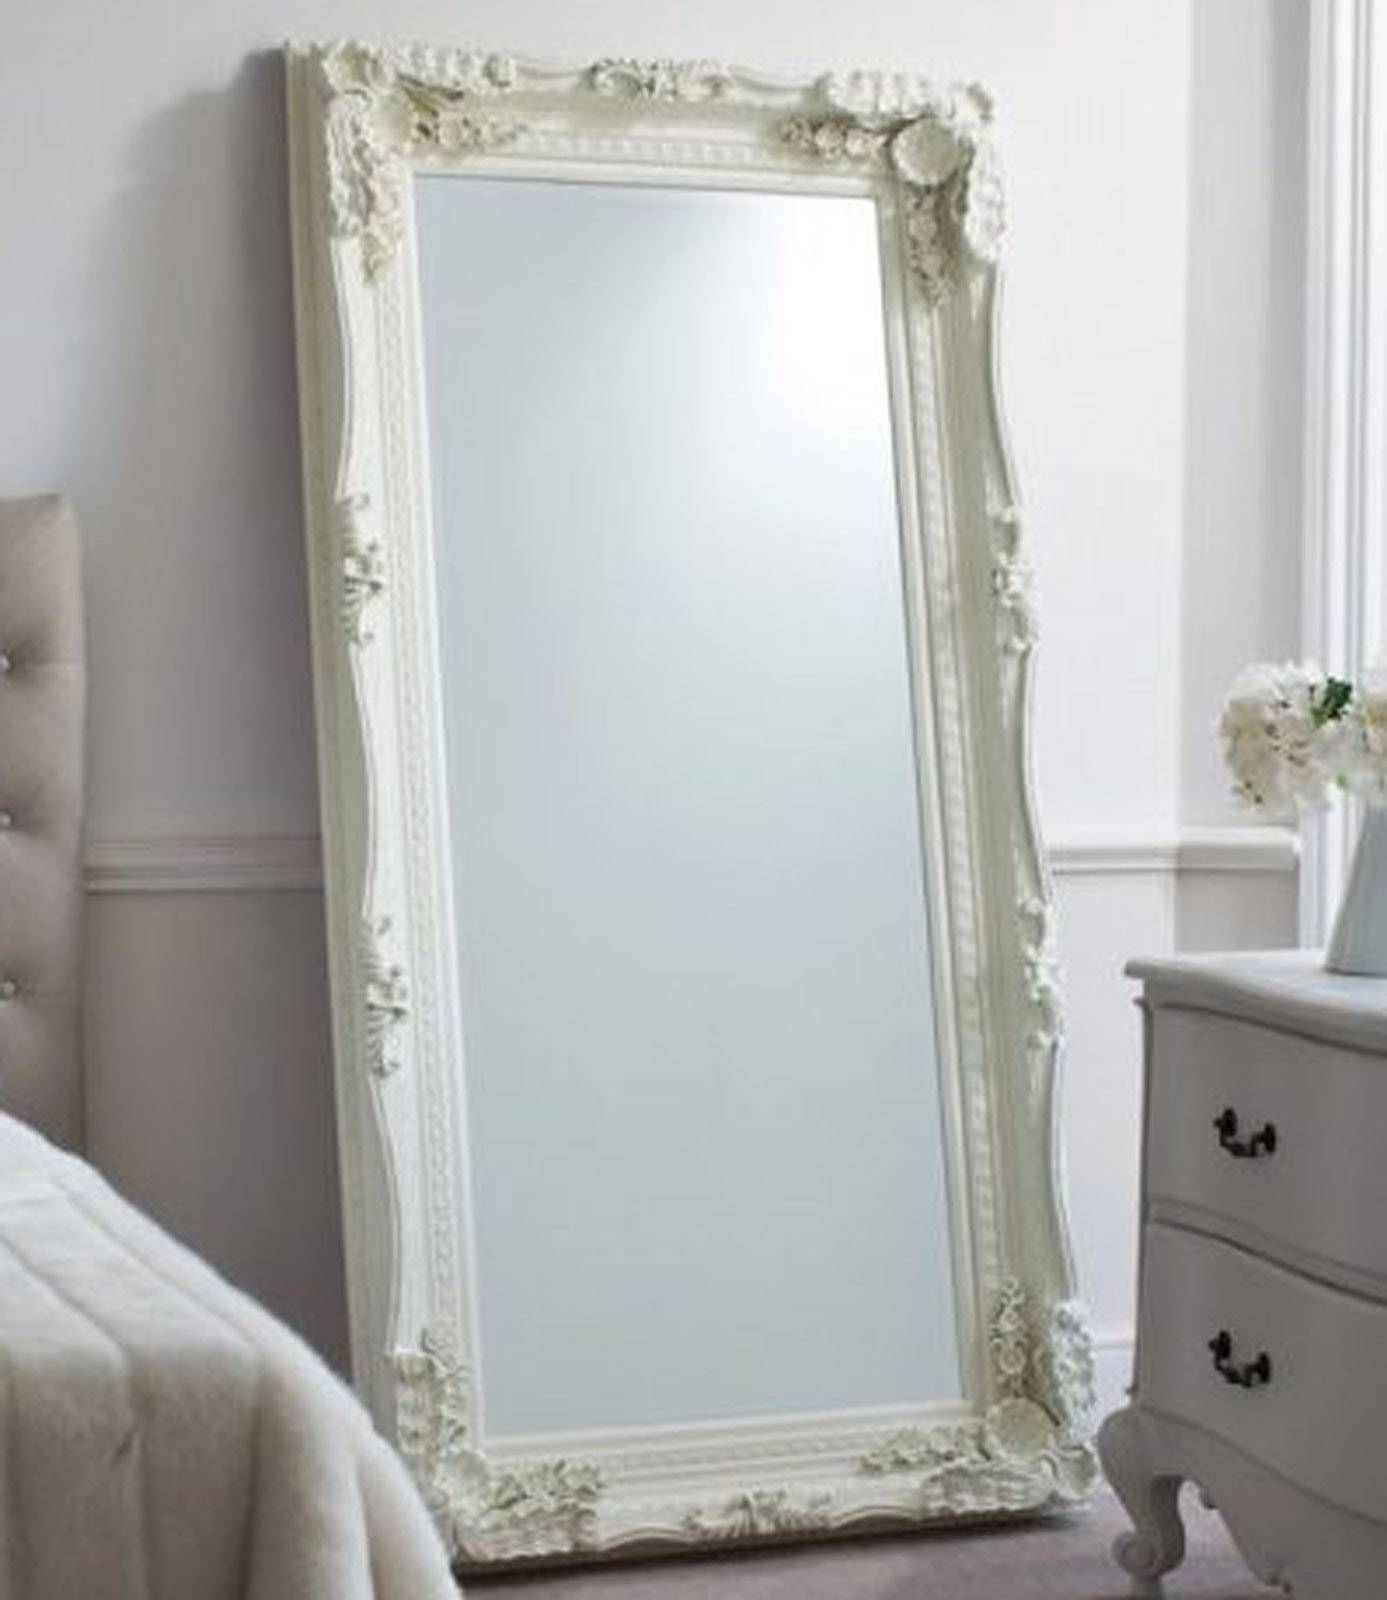 Elaborate French Style Cream Ornate Mirror 90Cm X 175Cm | Framed with regard to Cream Ornate Mirrors (Image 5 of 25)